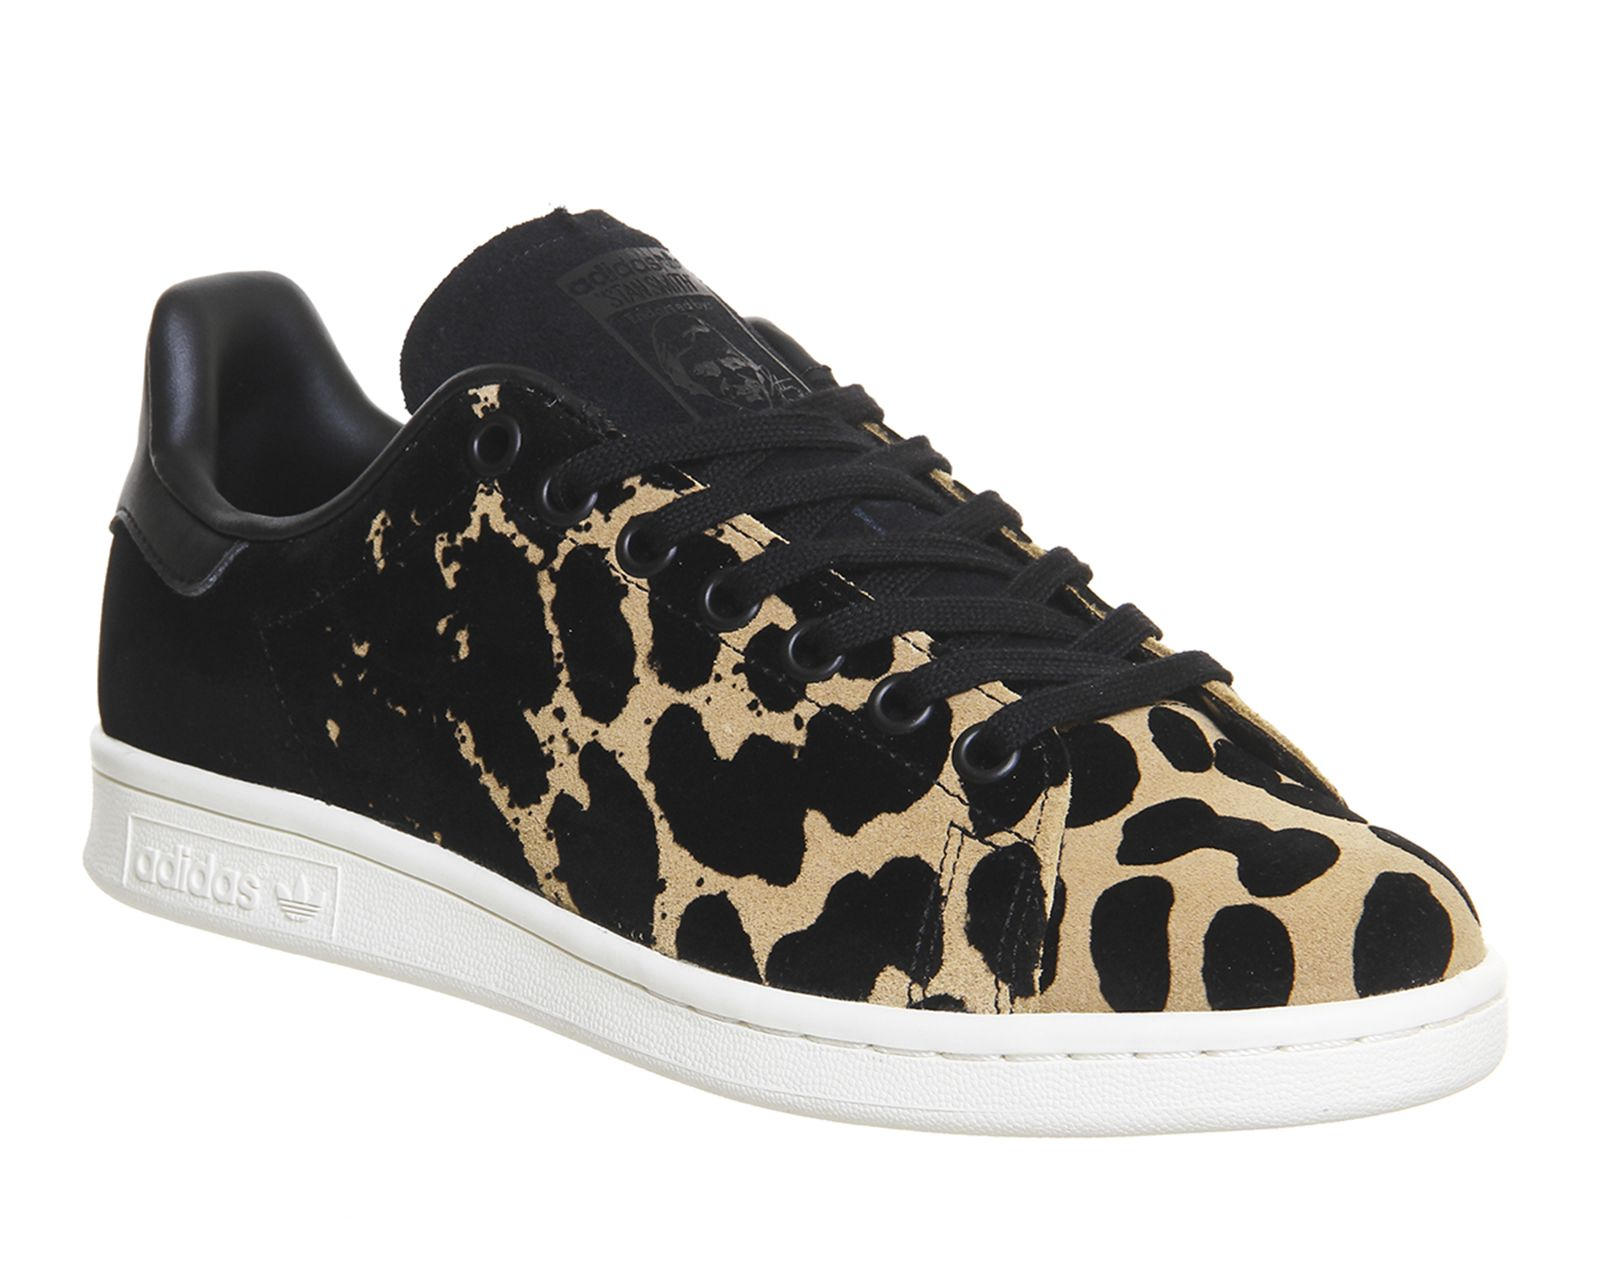 Adidas Stan Smith Black Leopard W - Unisex Sports